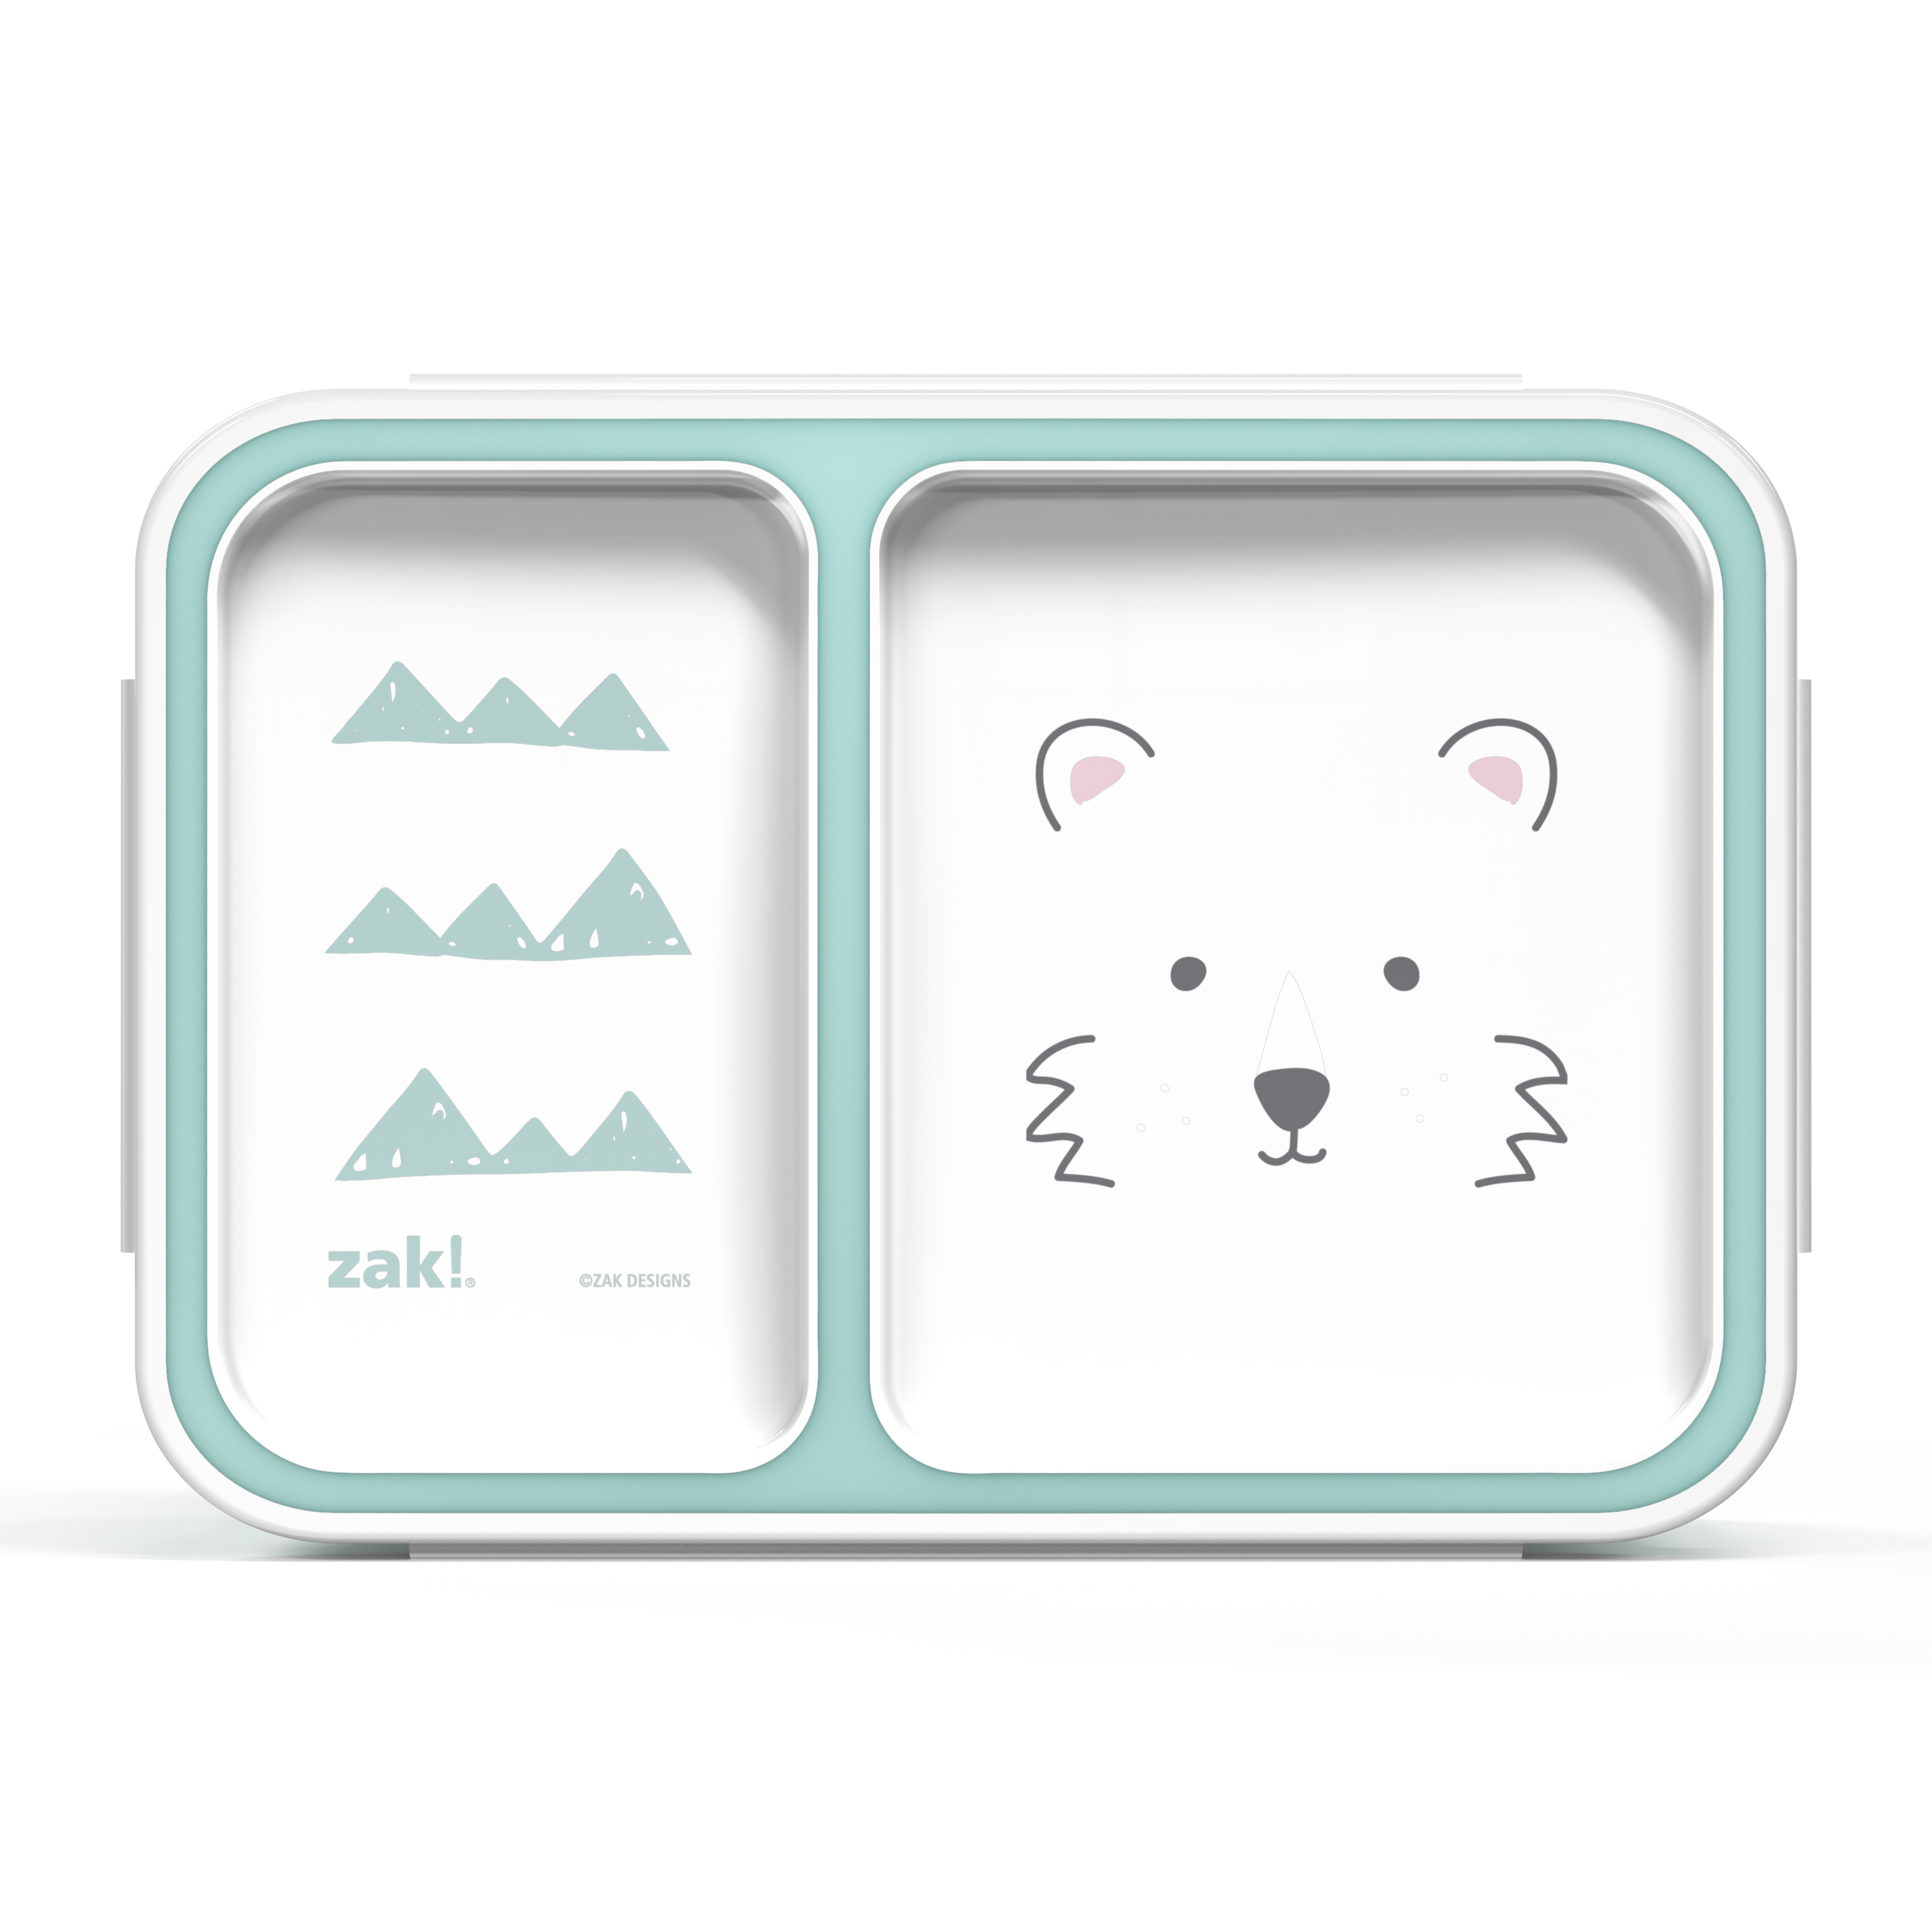 Soft Lines Dual-compartment Reusable Bento Box, Teddy Bears slideshow image 2